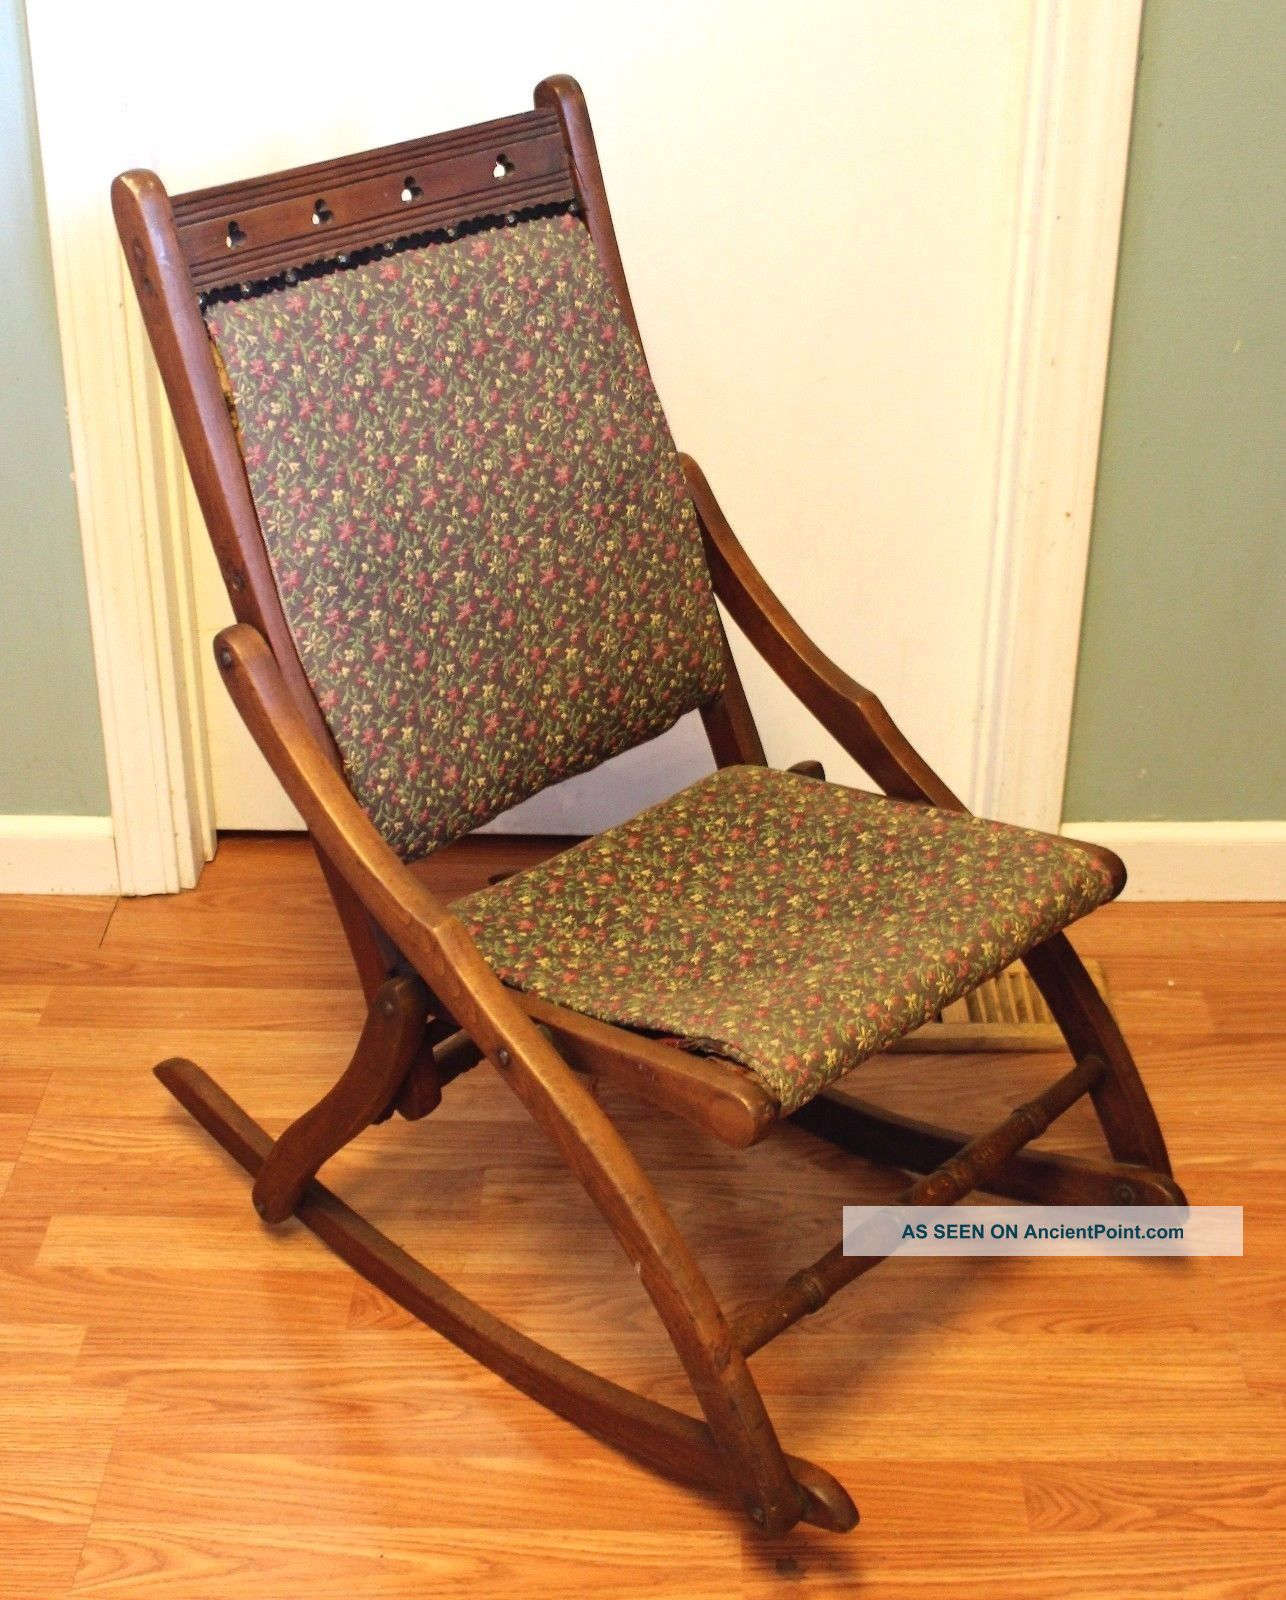 Vintage Folding Wood Rocking Chair With Fabric Seat And Back 1900-1950 photo